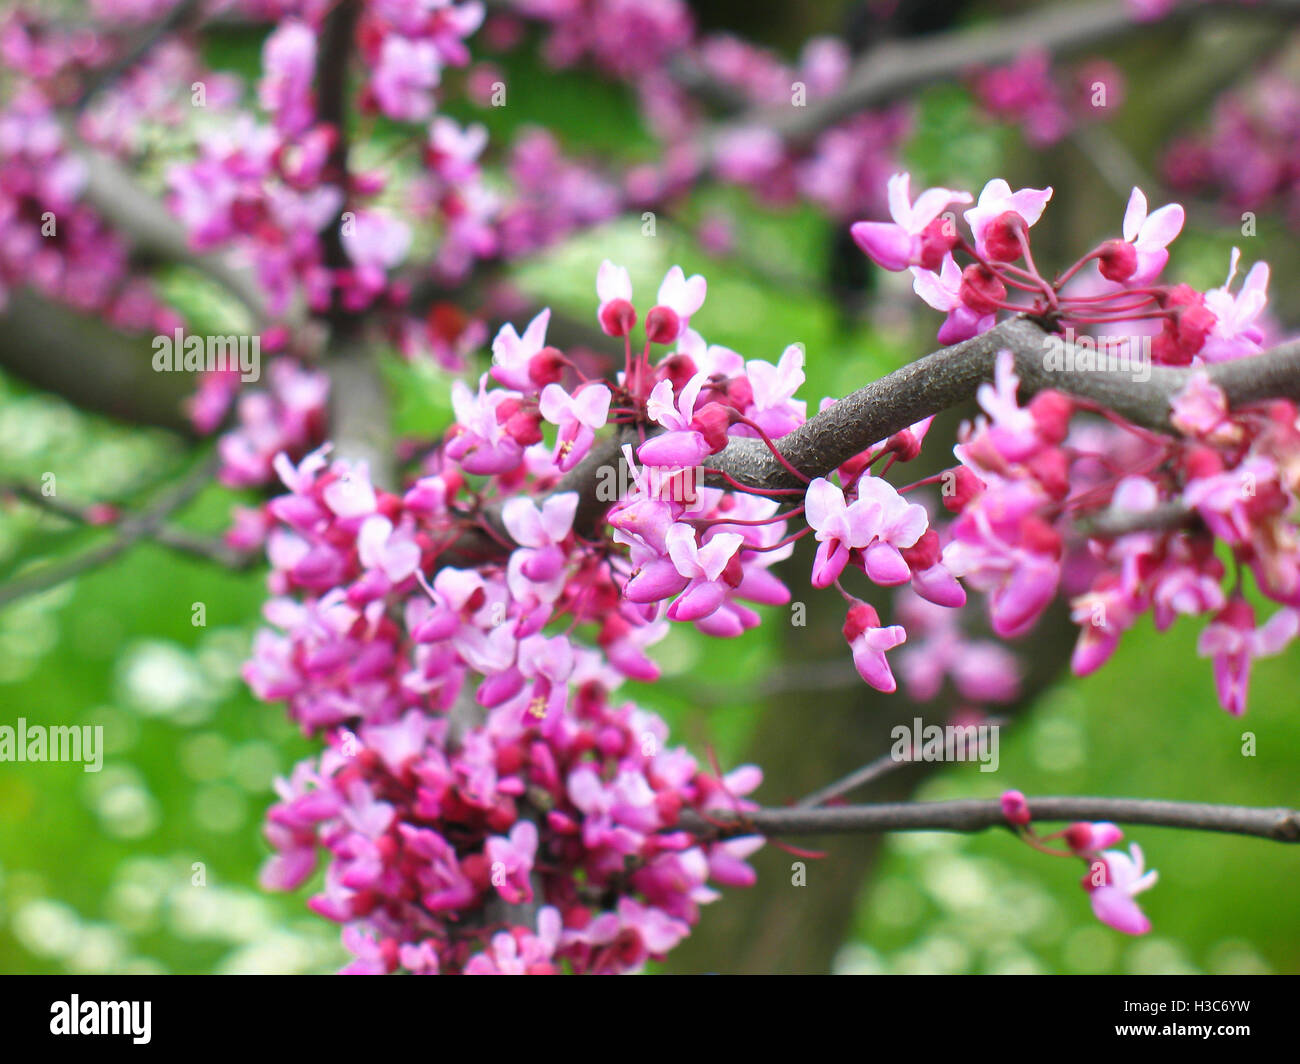 lilac flower with blurred foreground and background,spring - Stock Image